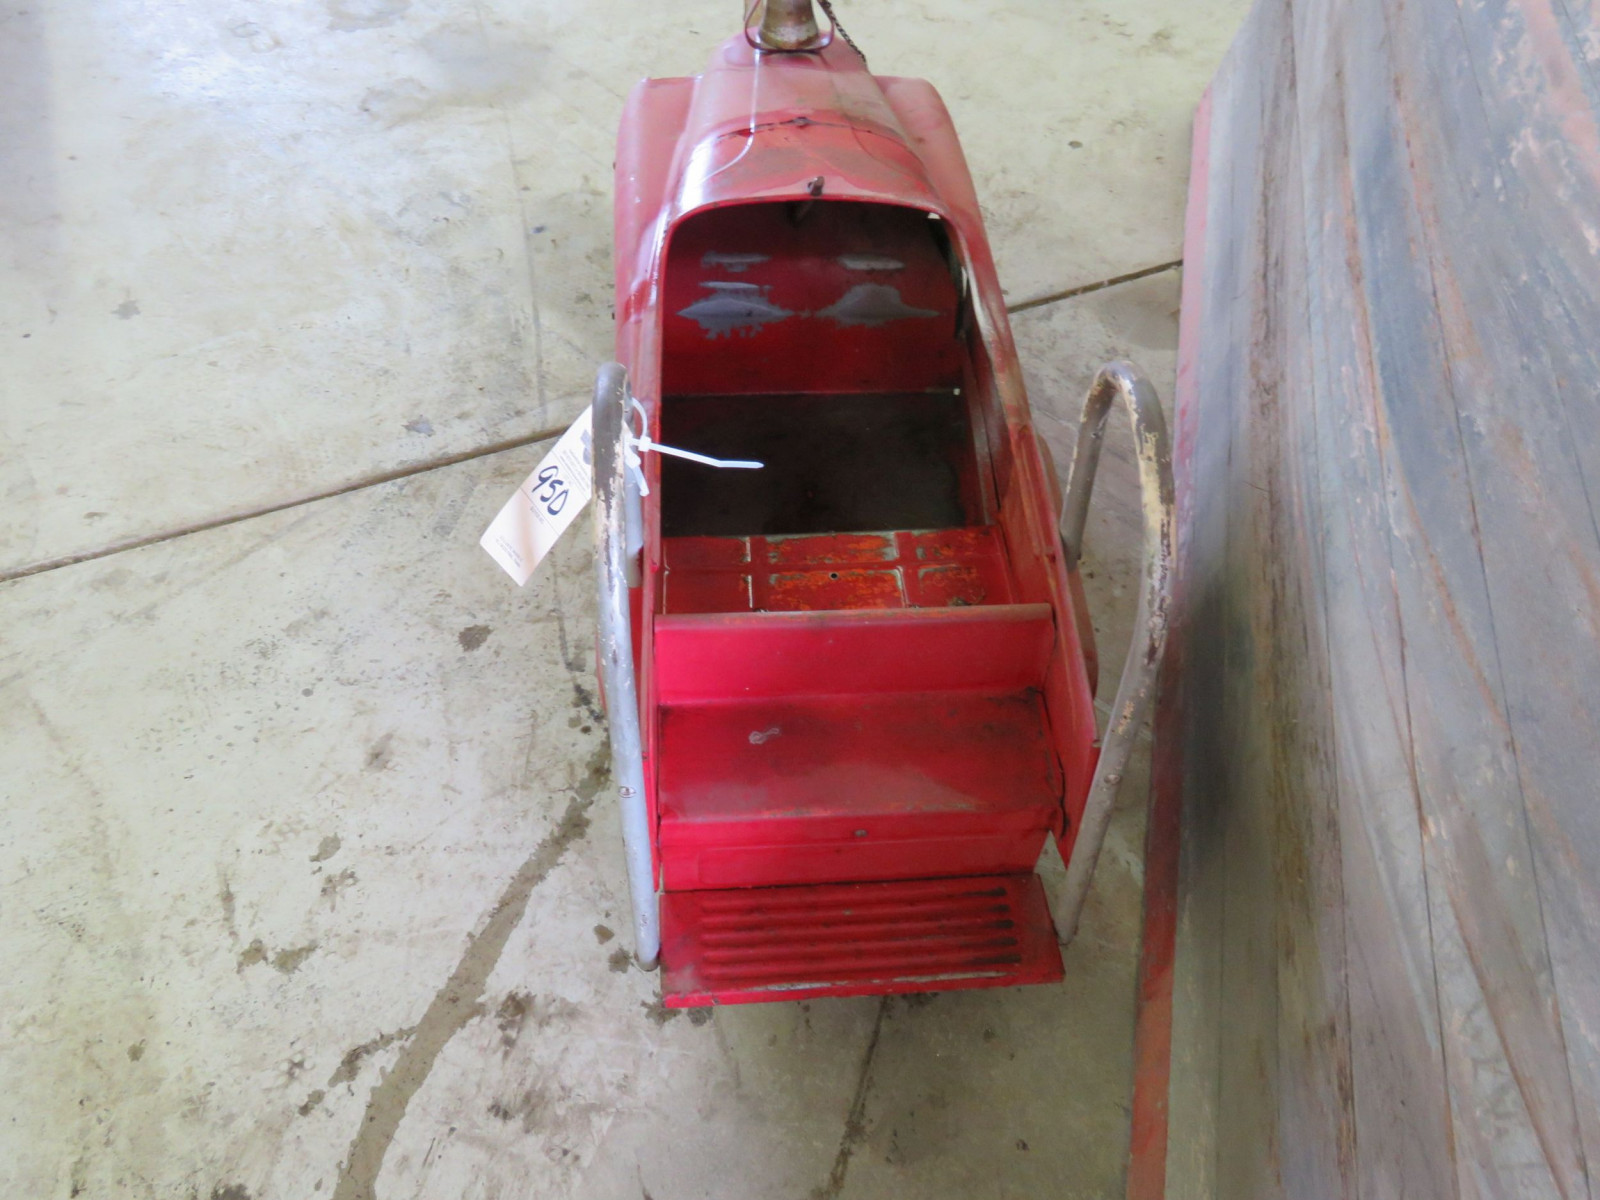 Murray Happy Time Fire Department Pedal Car - Image 3